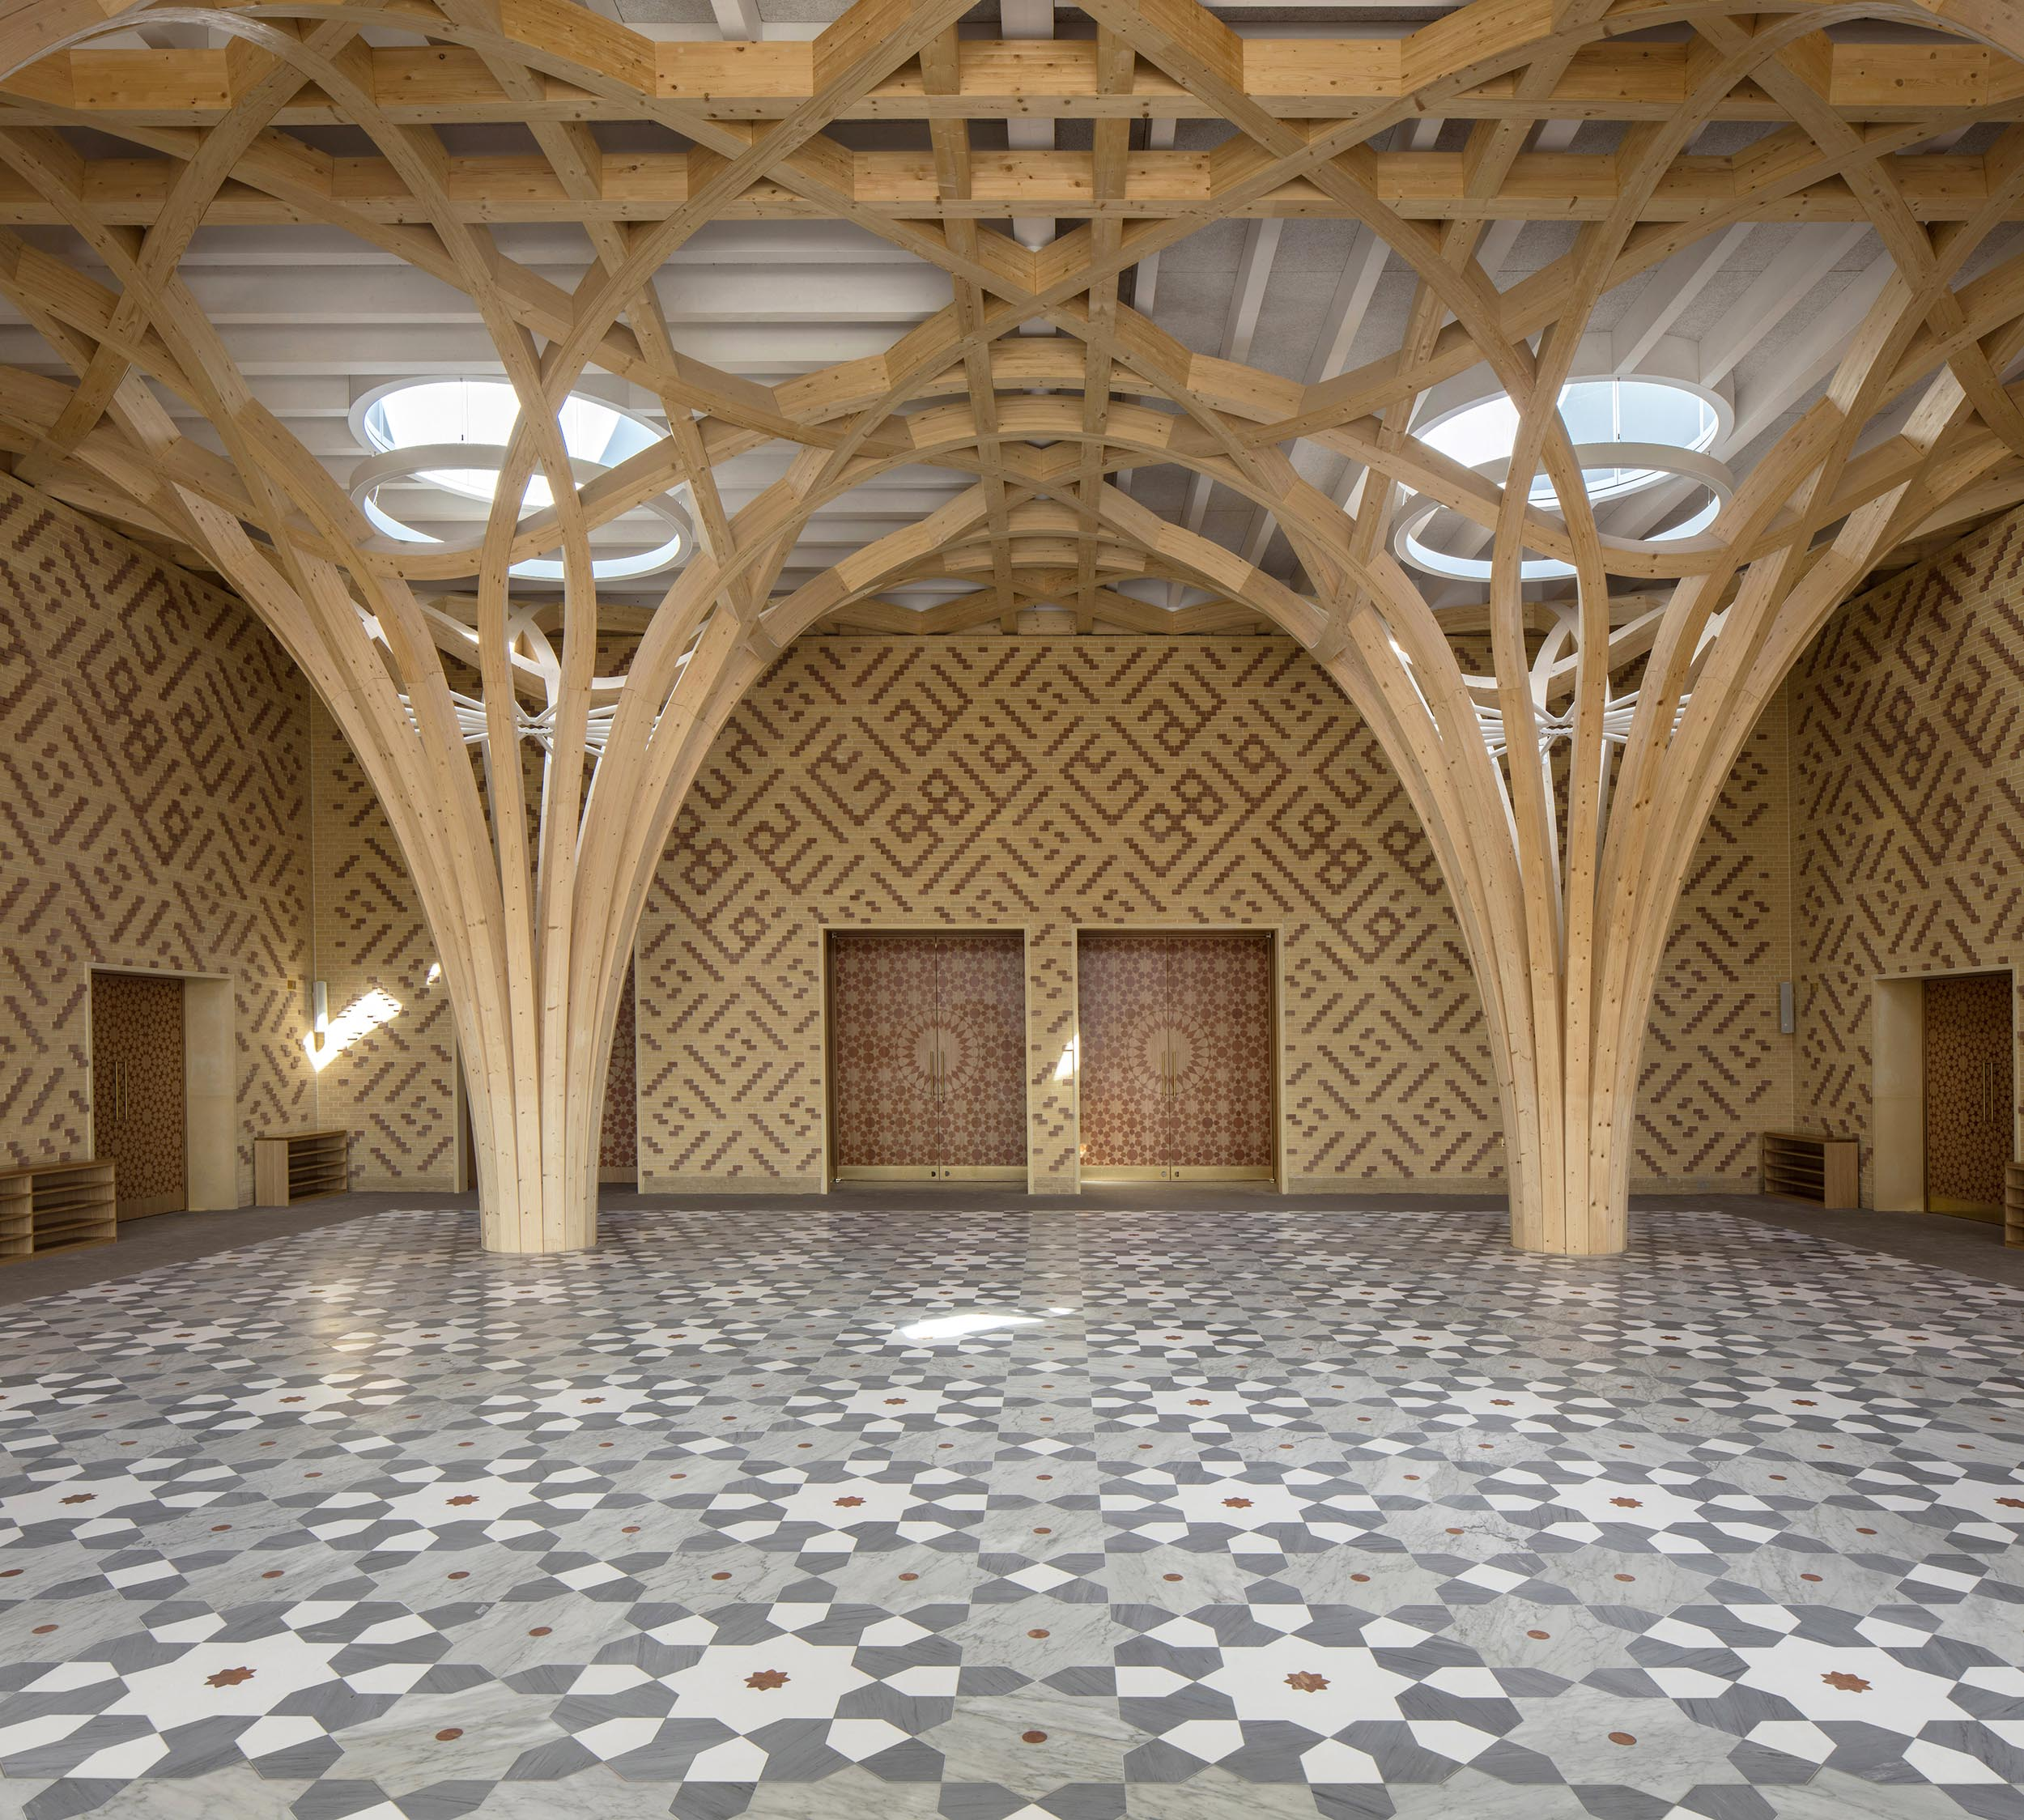 Cambridge Mosque - Atrium Columns - by Marks Barfield Architects, photo Morley von Sternberg